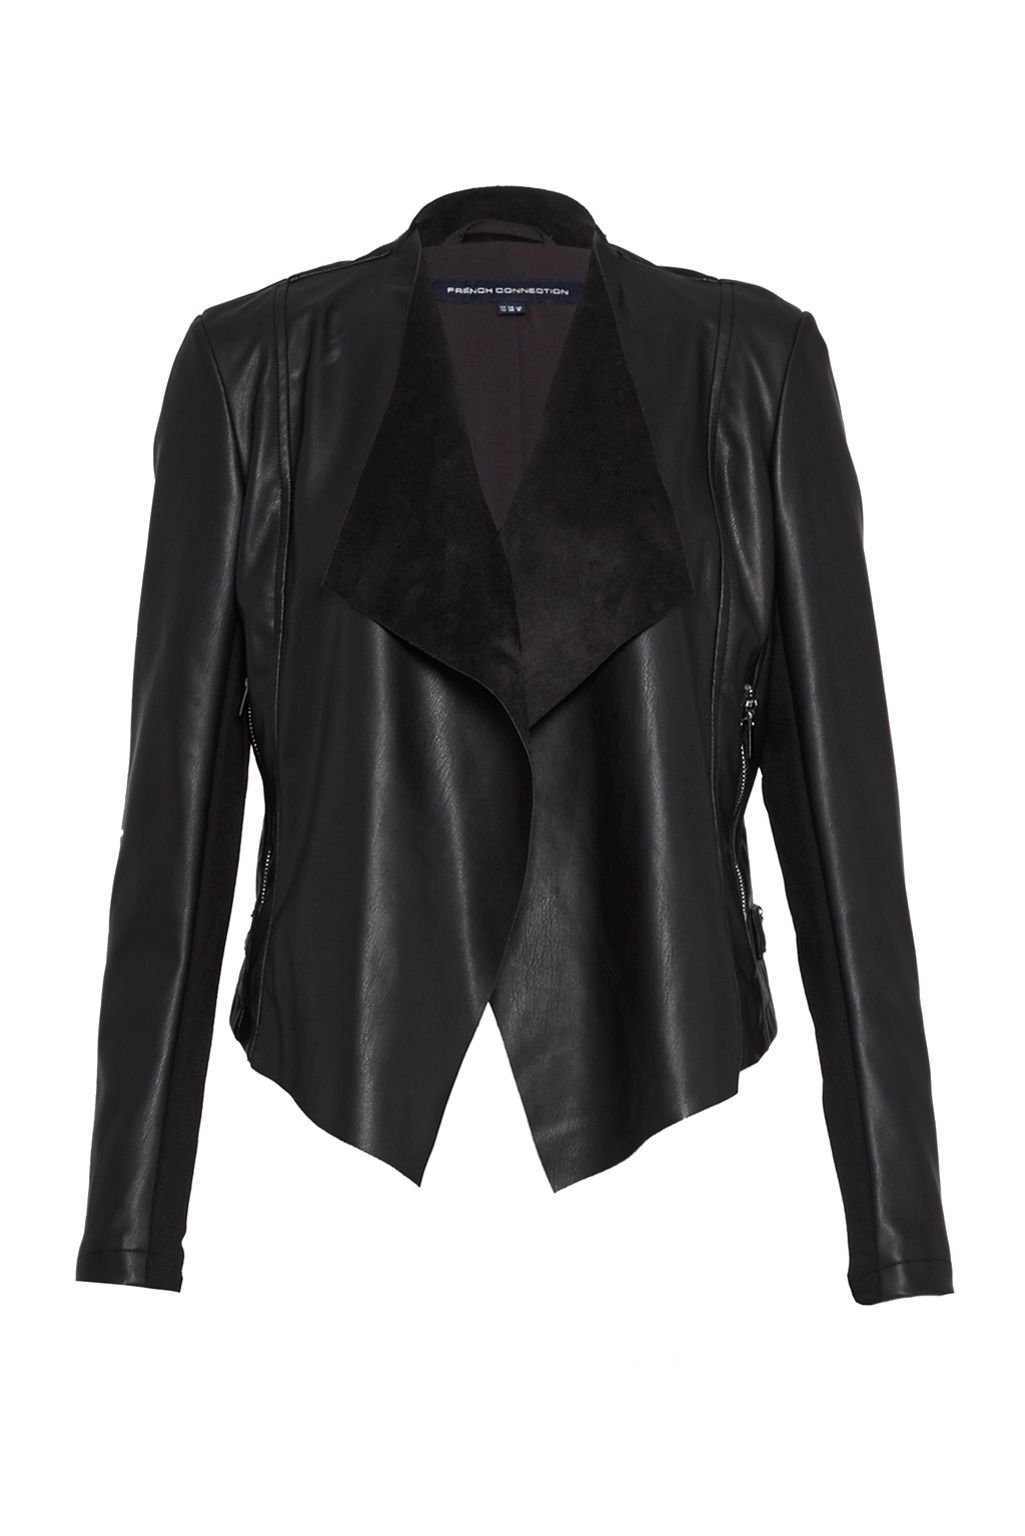 French Connection Stephanie Faux Leather Waterfall Jacket, Black